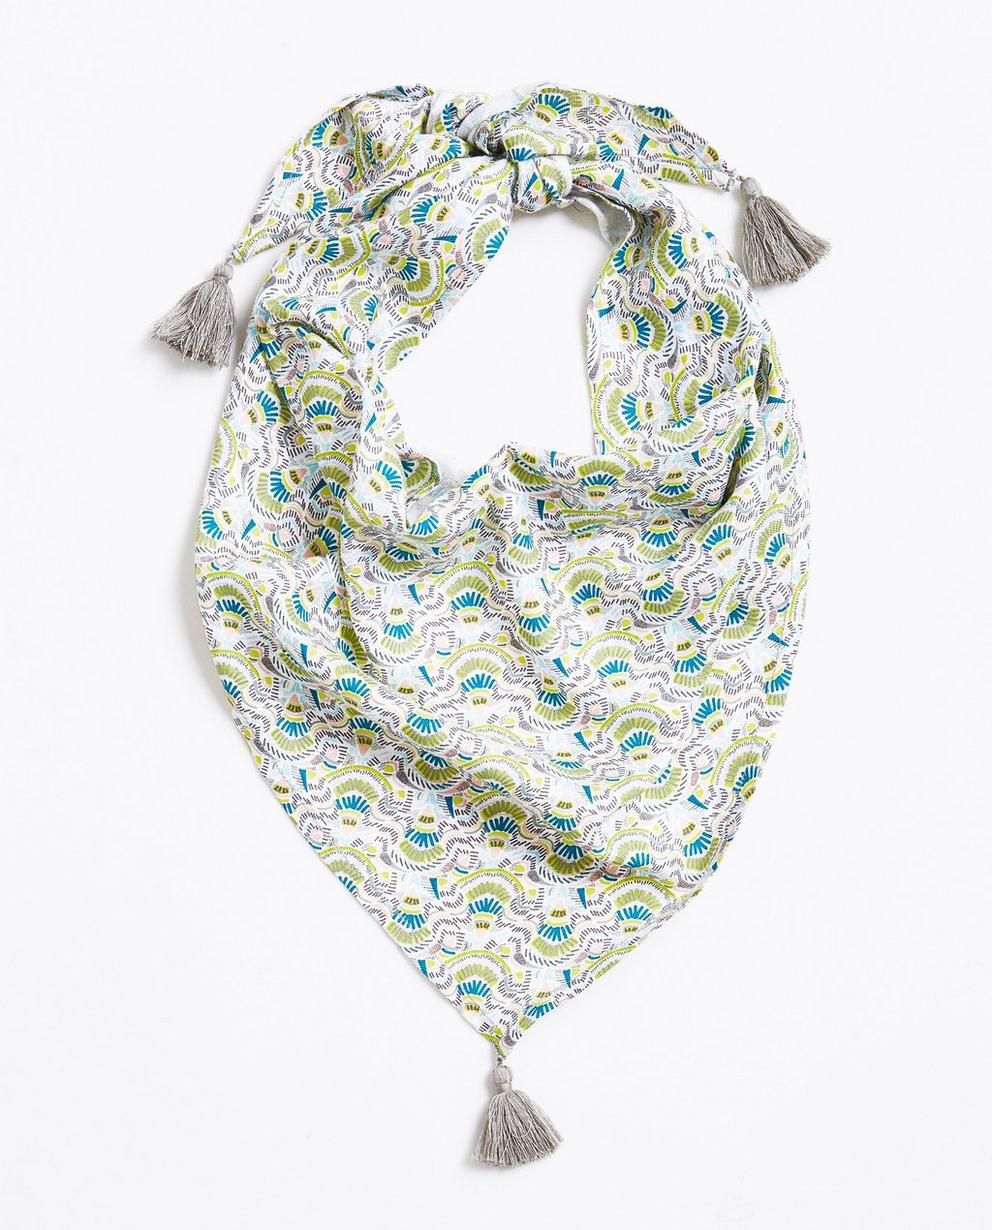 Foulard triangulaire  - viscose, imprimé coloré - JBC